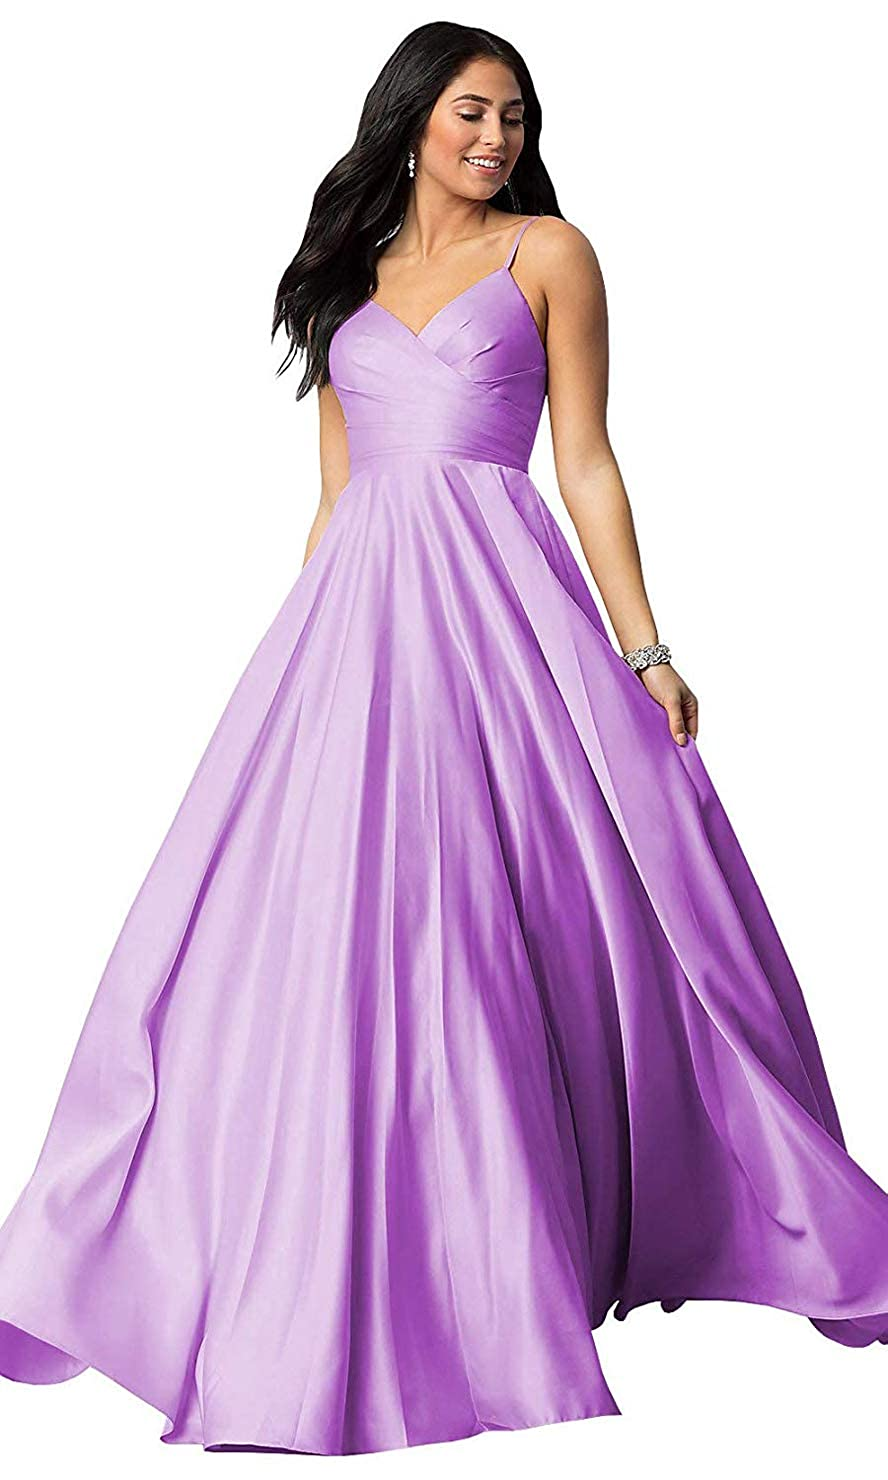 Dark Purple FeiYueXinXing Satin VNeck Prom Dresses Long Spaghetti Strap Formal Prom Evening Gown